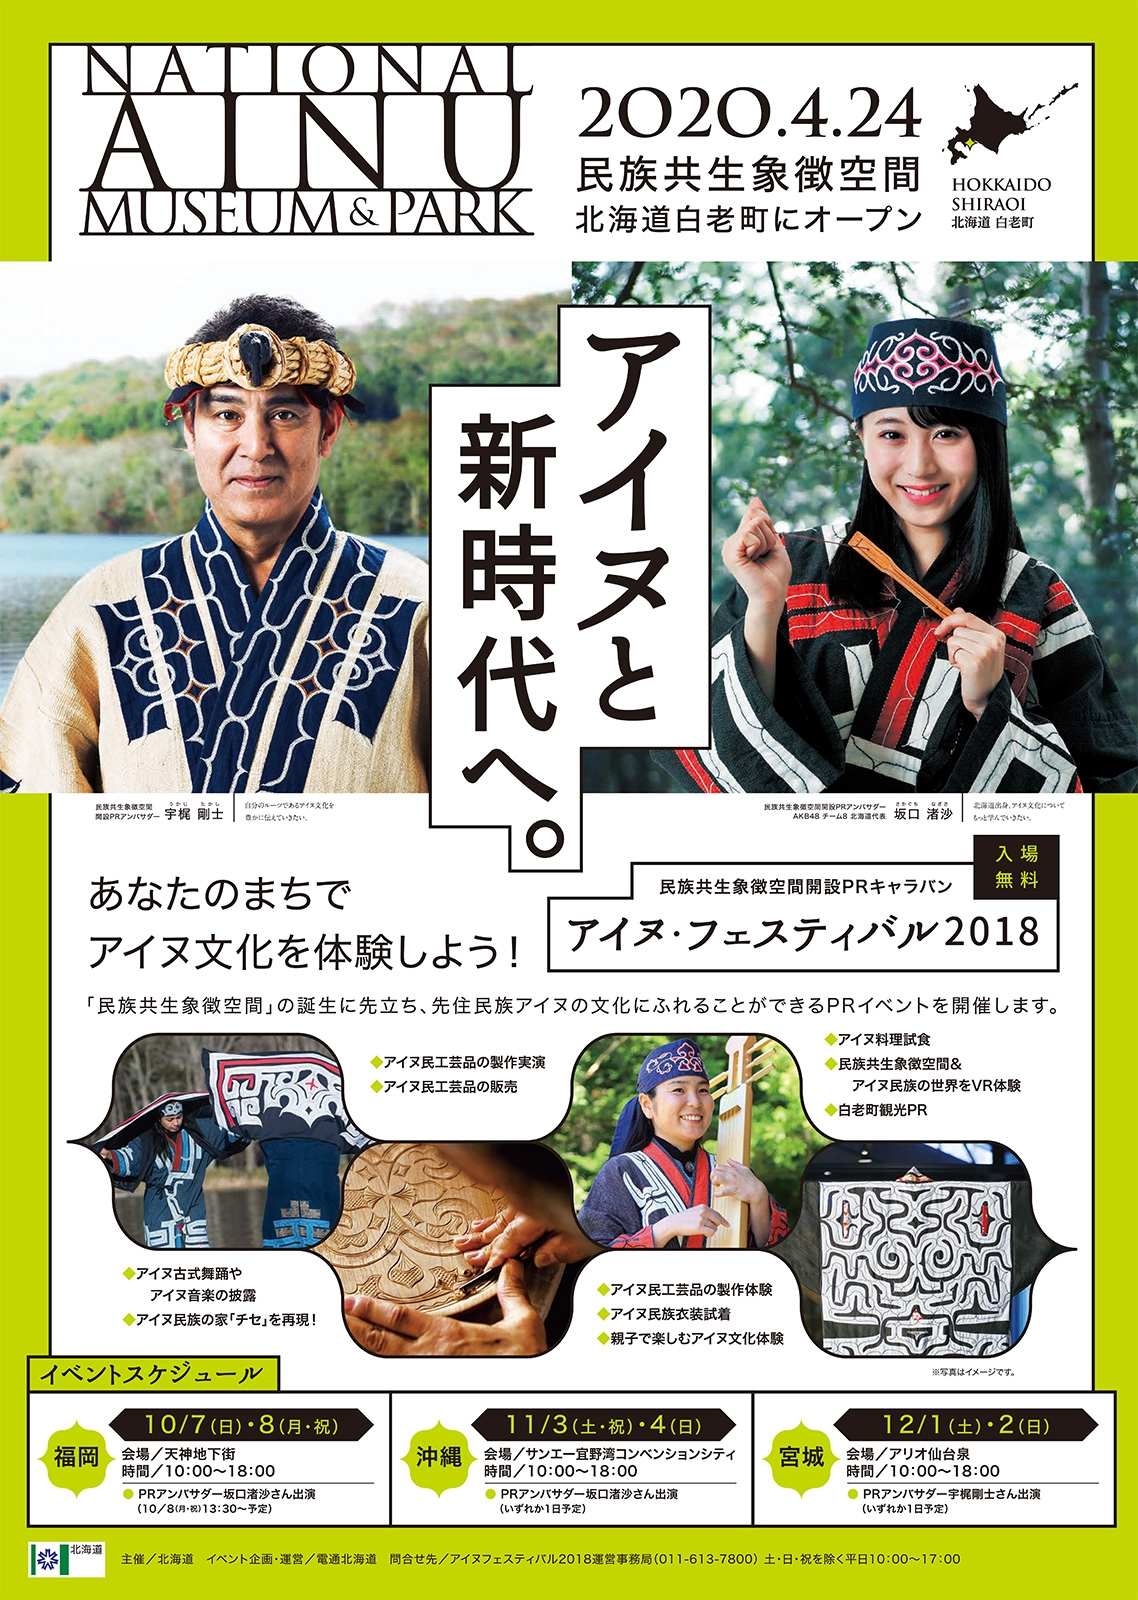 https://toyota-team8.jp/news/uploads/national_ainu_museumandpark.jpg